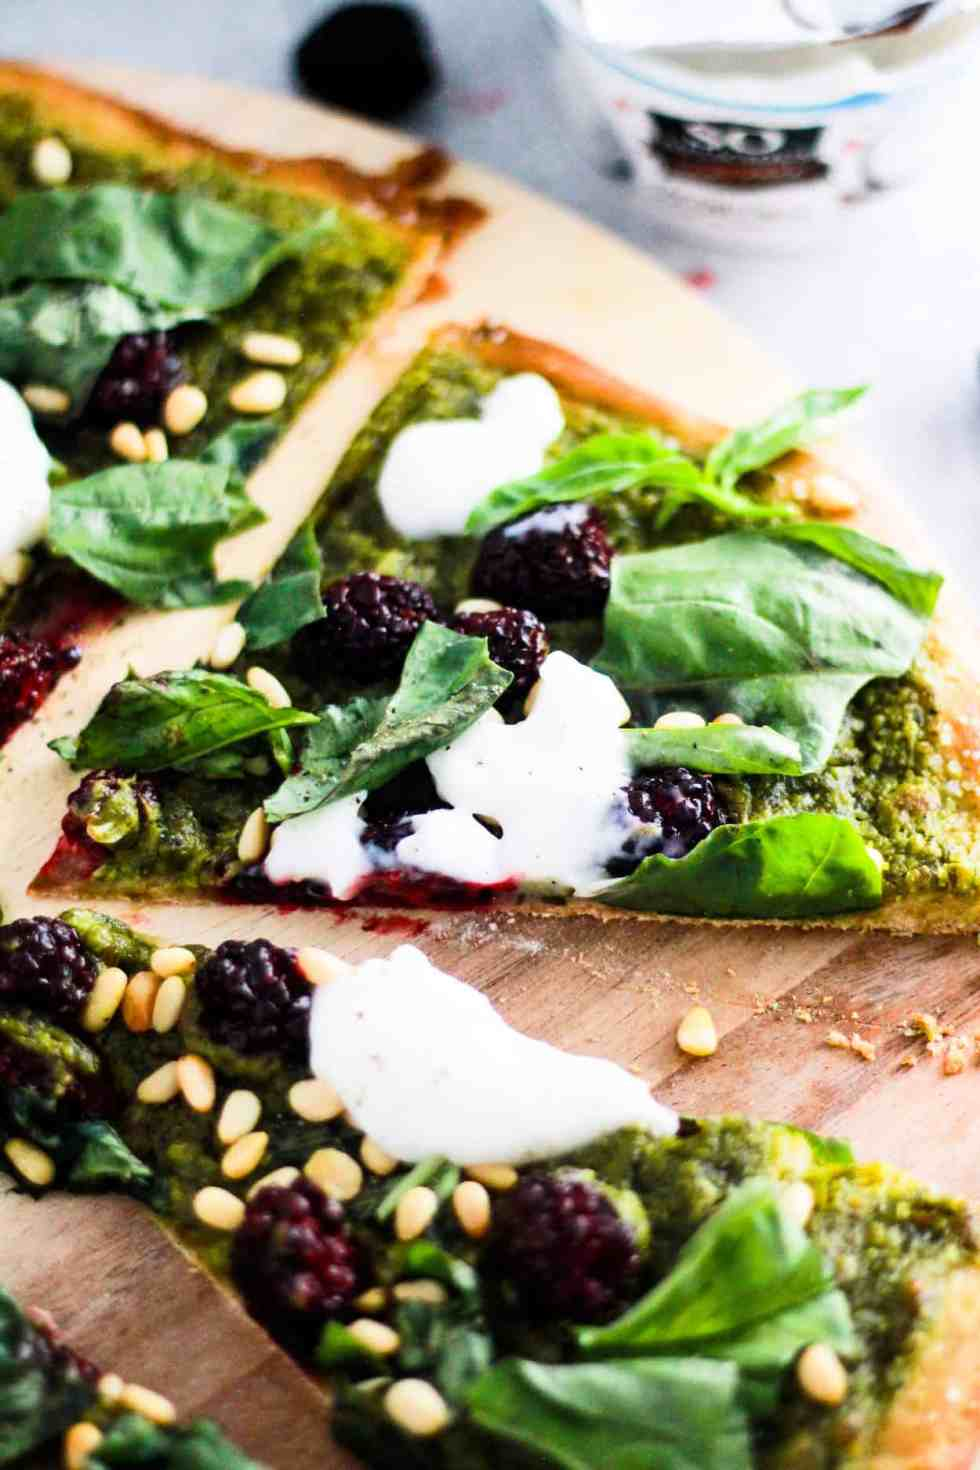 Vegan pesto pizza slices on wood board with So Delicious Coconut Milk Yogurt behind it.